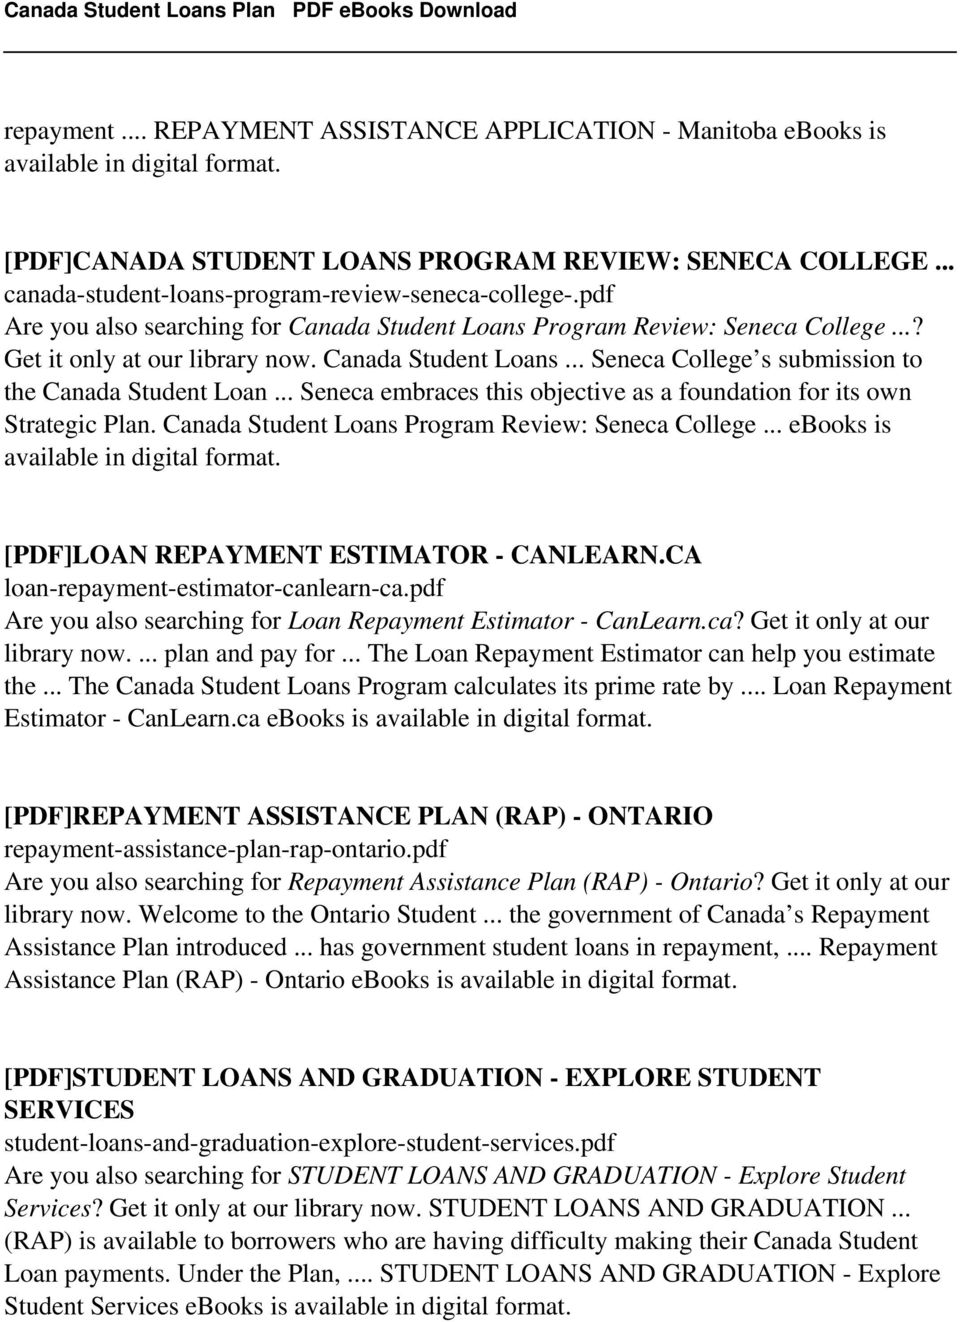 Canada Student Loans Plan - PDF Free Download